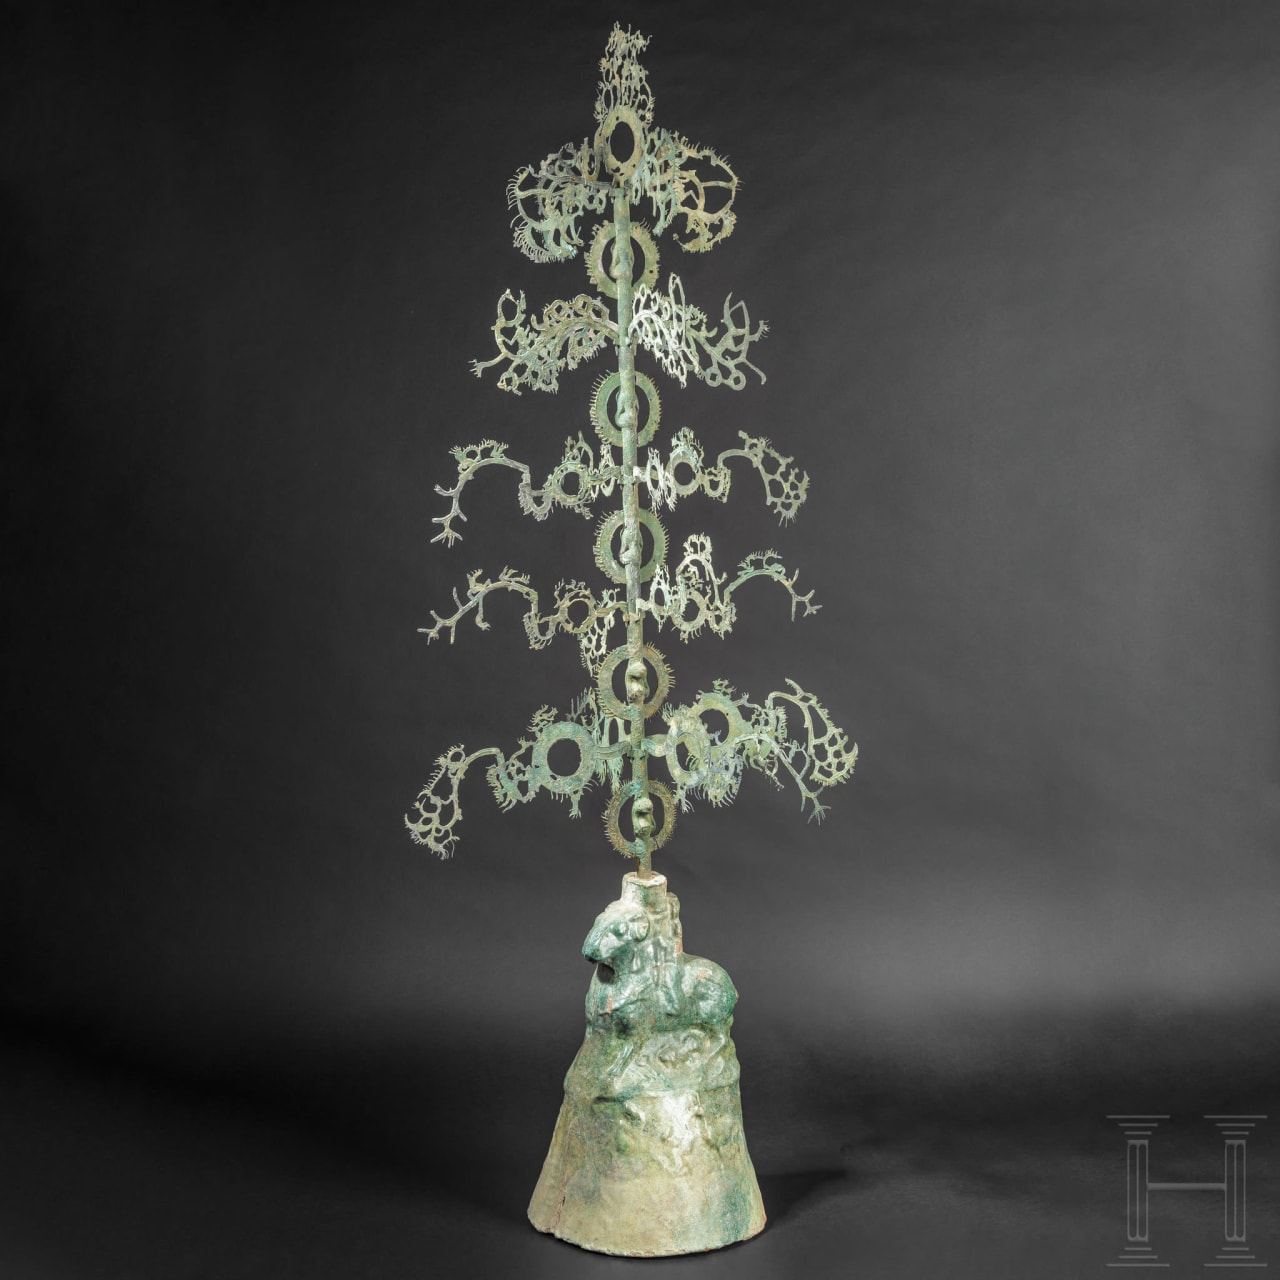 An extremely rare, early, Chinese money-shaking tree, known as yao qian shu, Eastern Han Dynasty, 25 to 220 A.D.